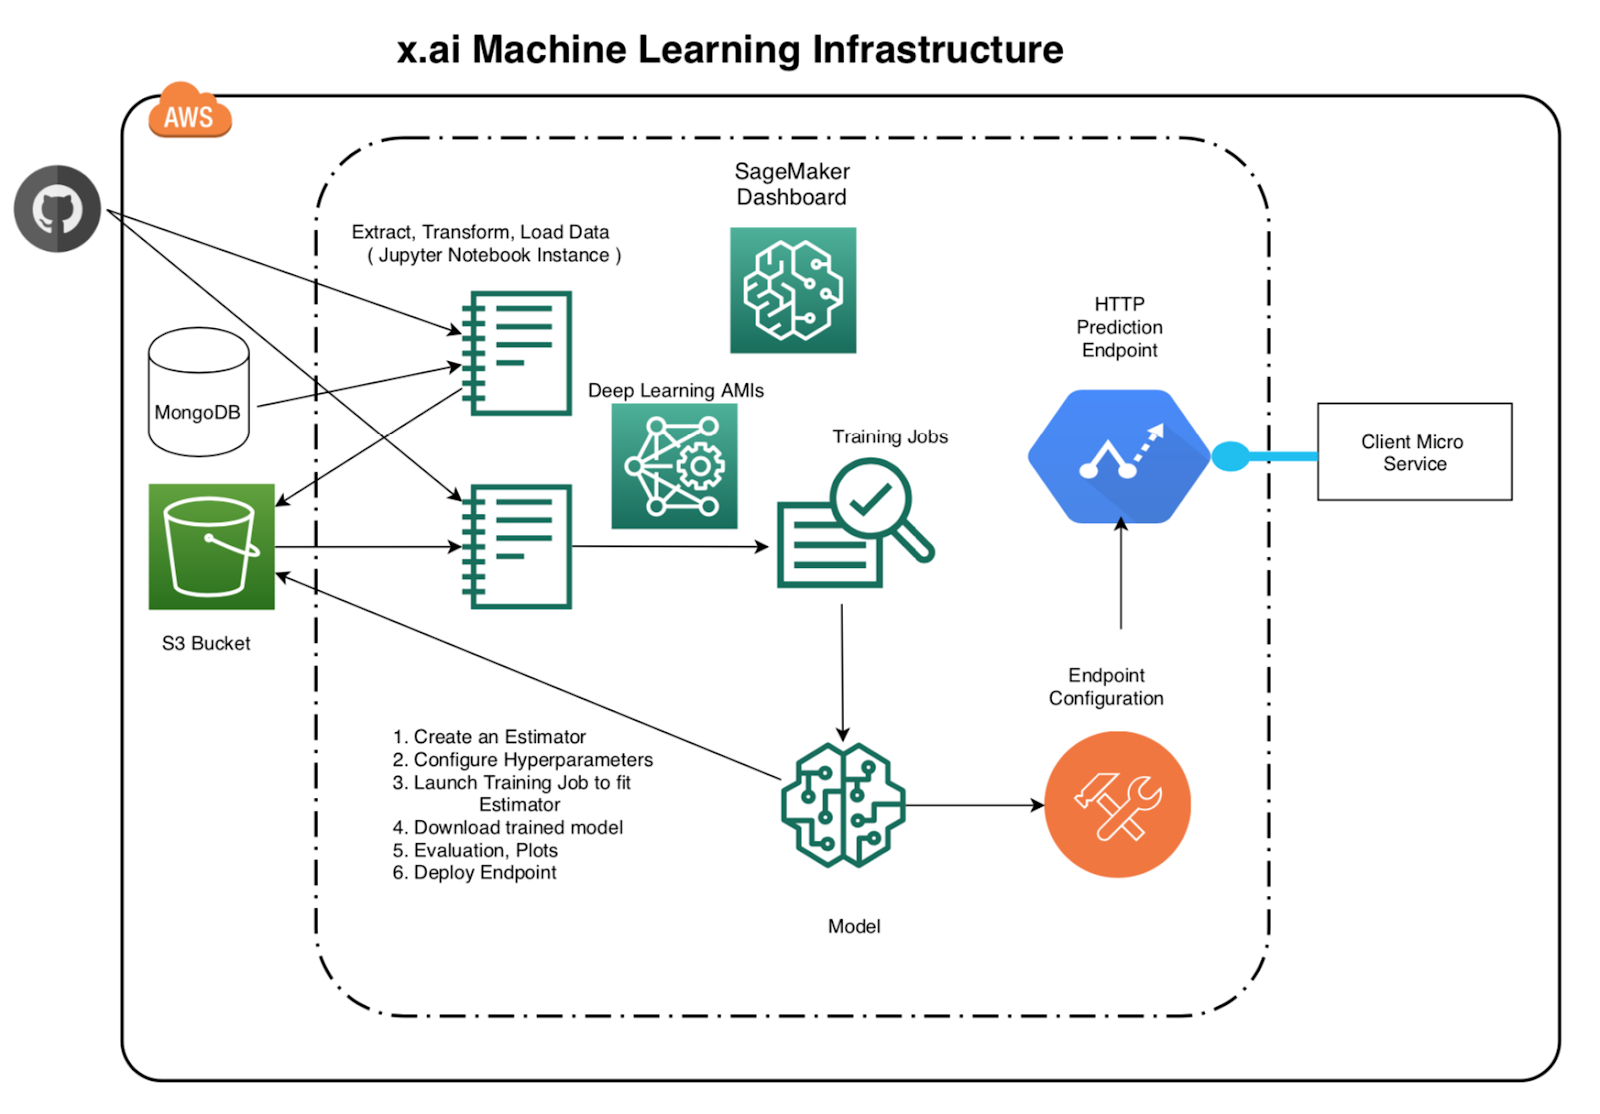 Machine Learning Infrastructure at x.ai 2